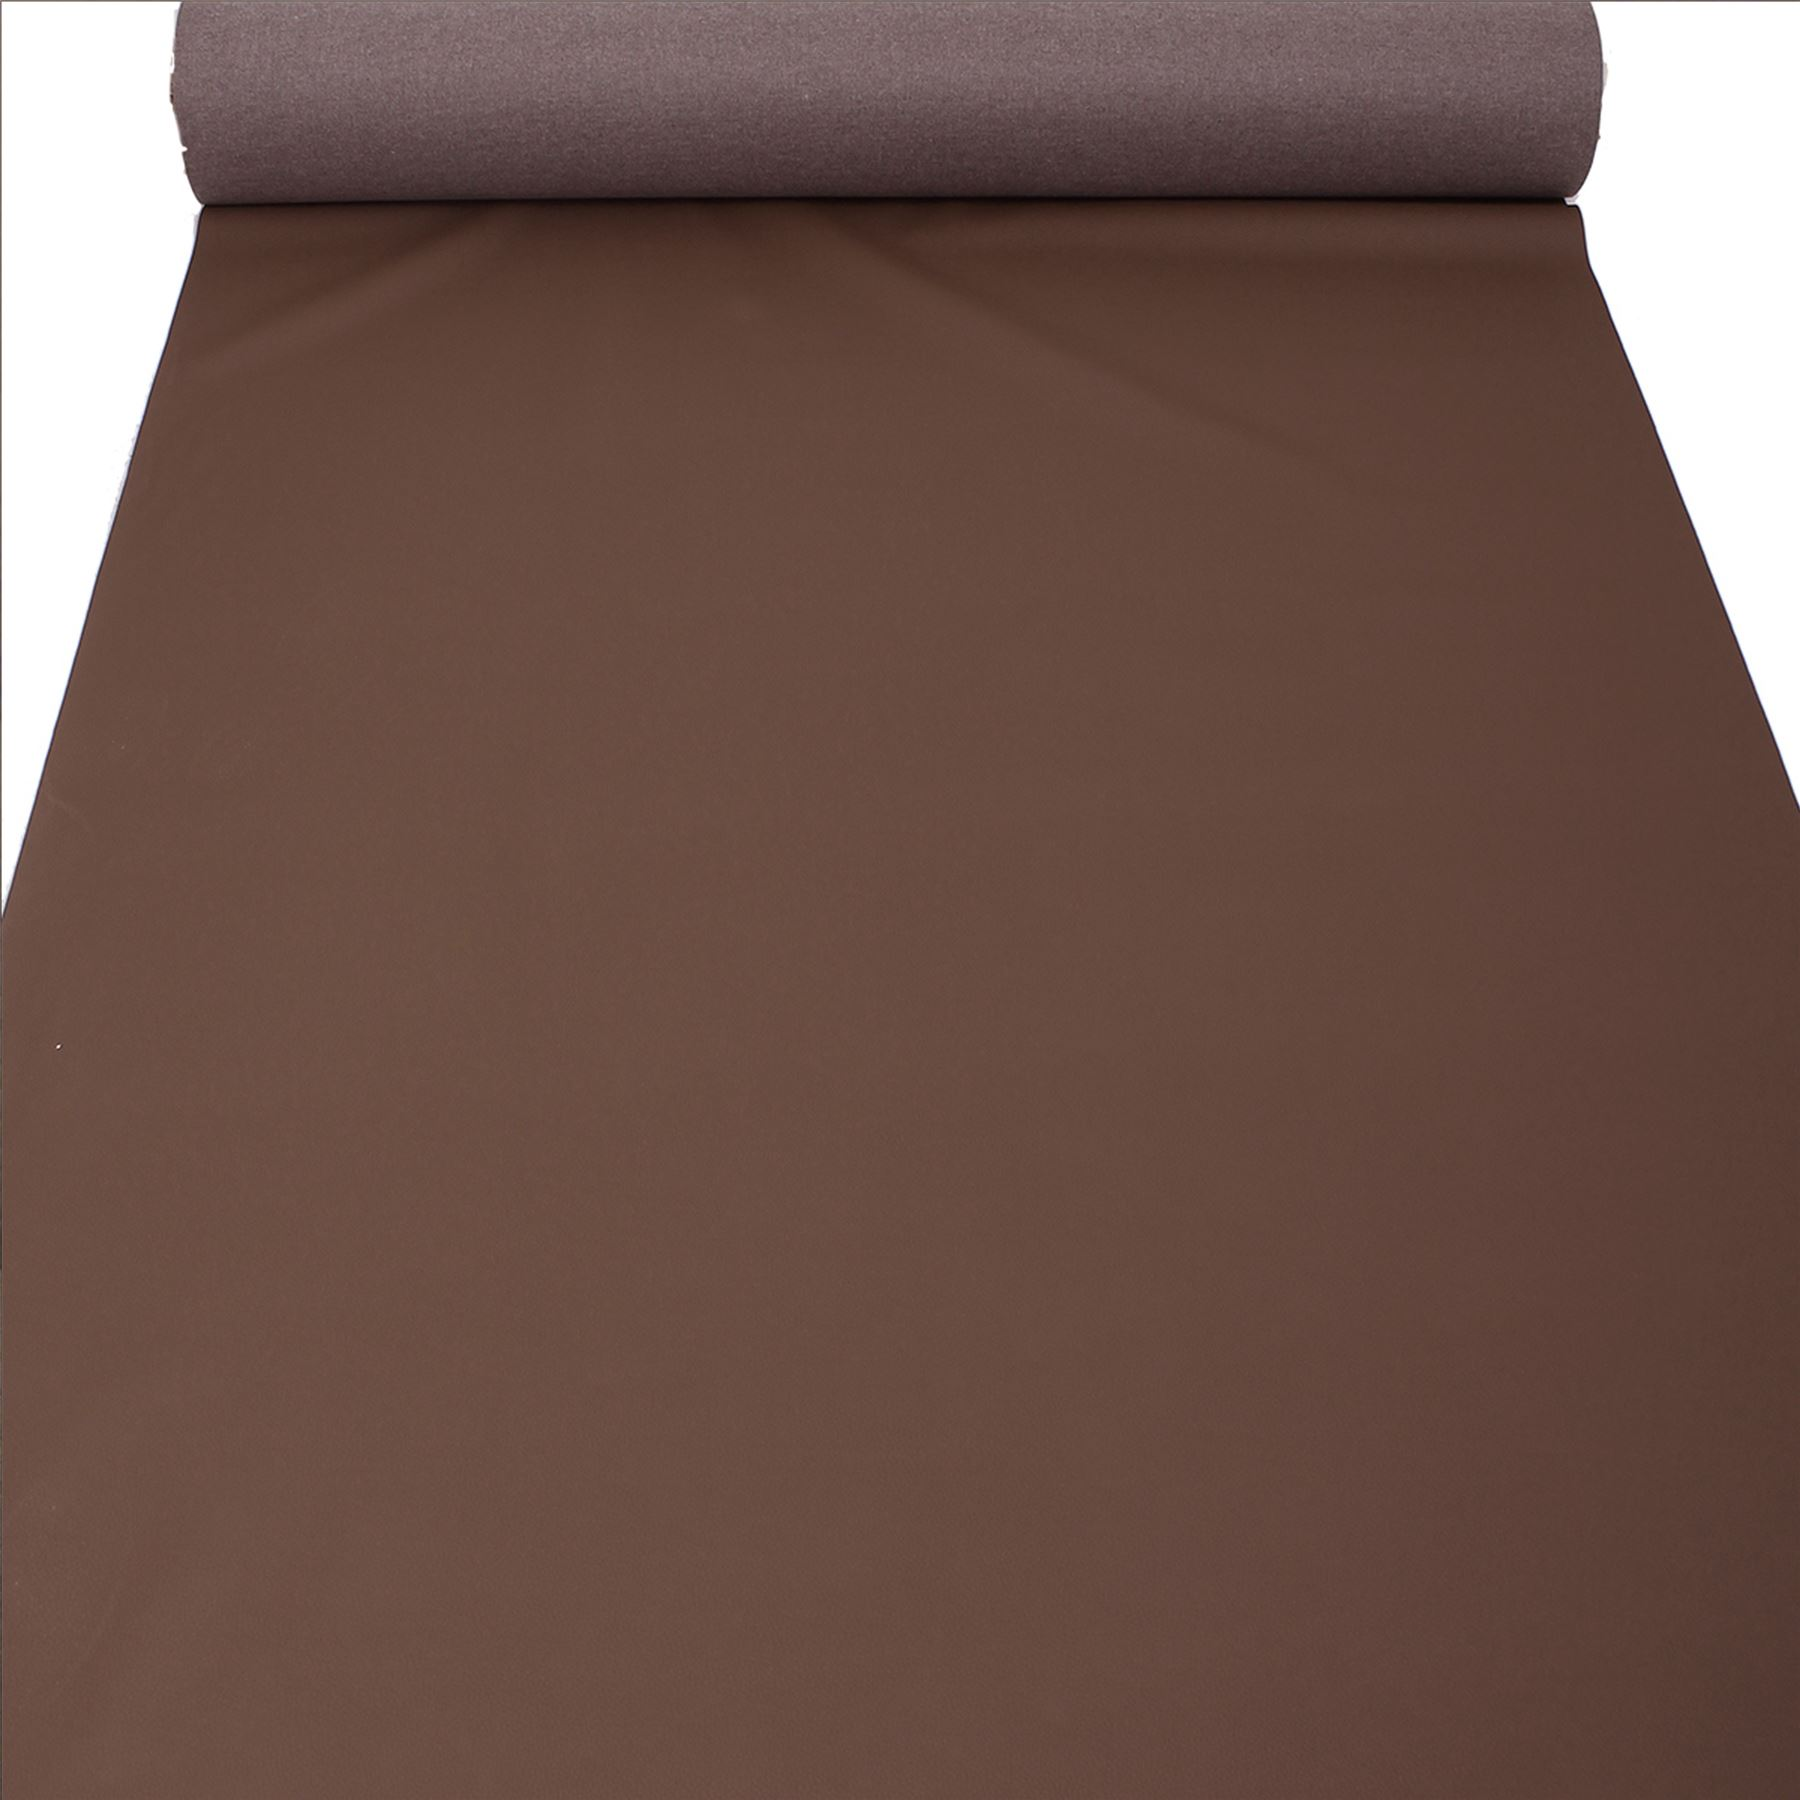 Nova-Faux-Leatherette-Artificial-Leather-Heavy-Grain-Upholstery-Vehicle-Fabric thumbnail 26